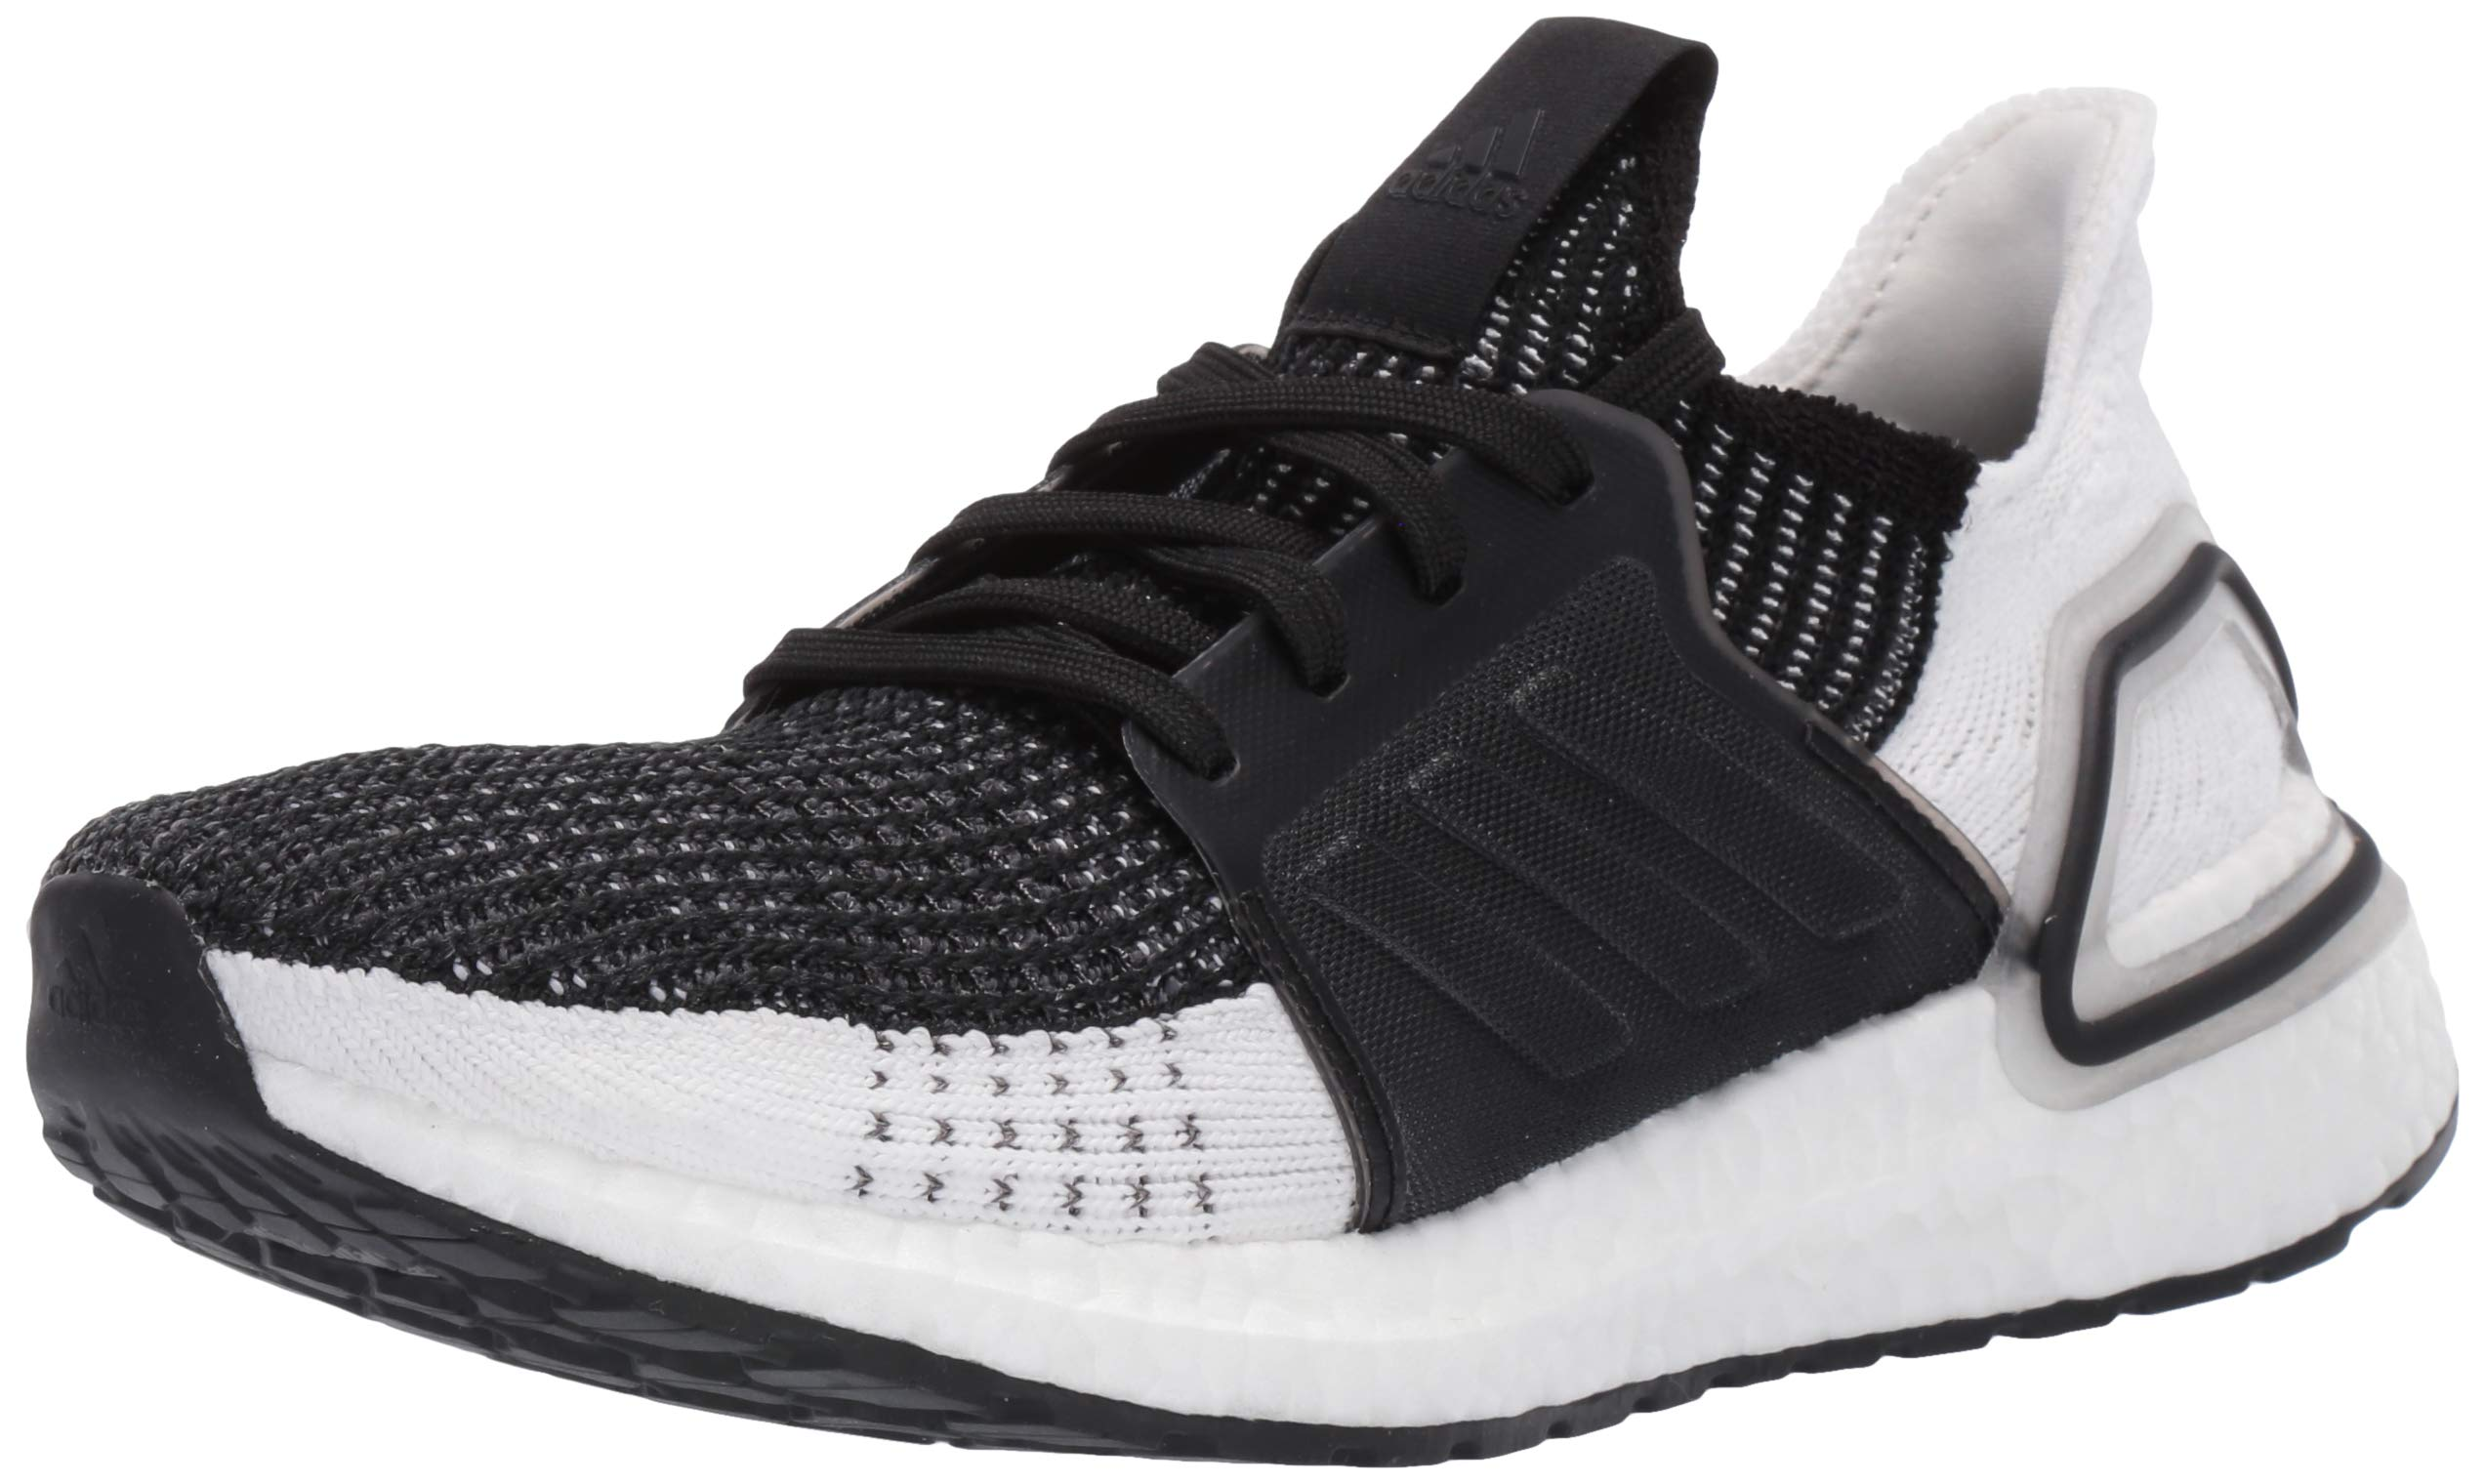 adidas Women's Ultraboost 19, Black Grey, 7.5 M US by adidas